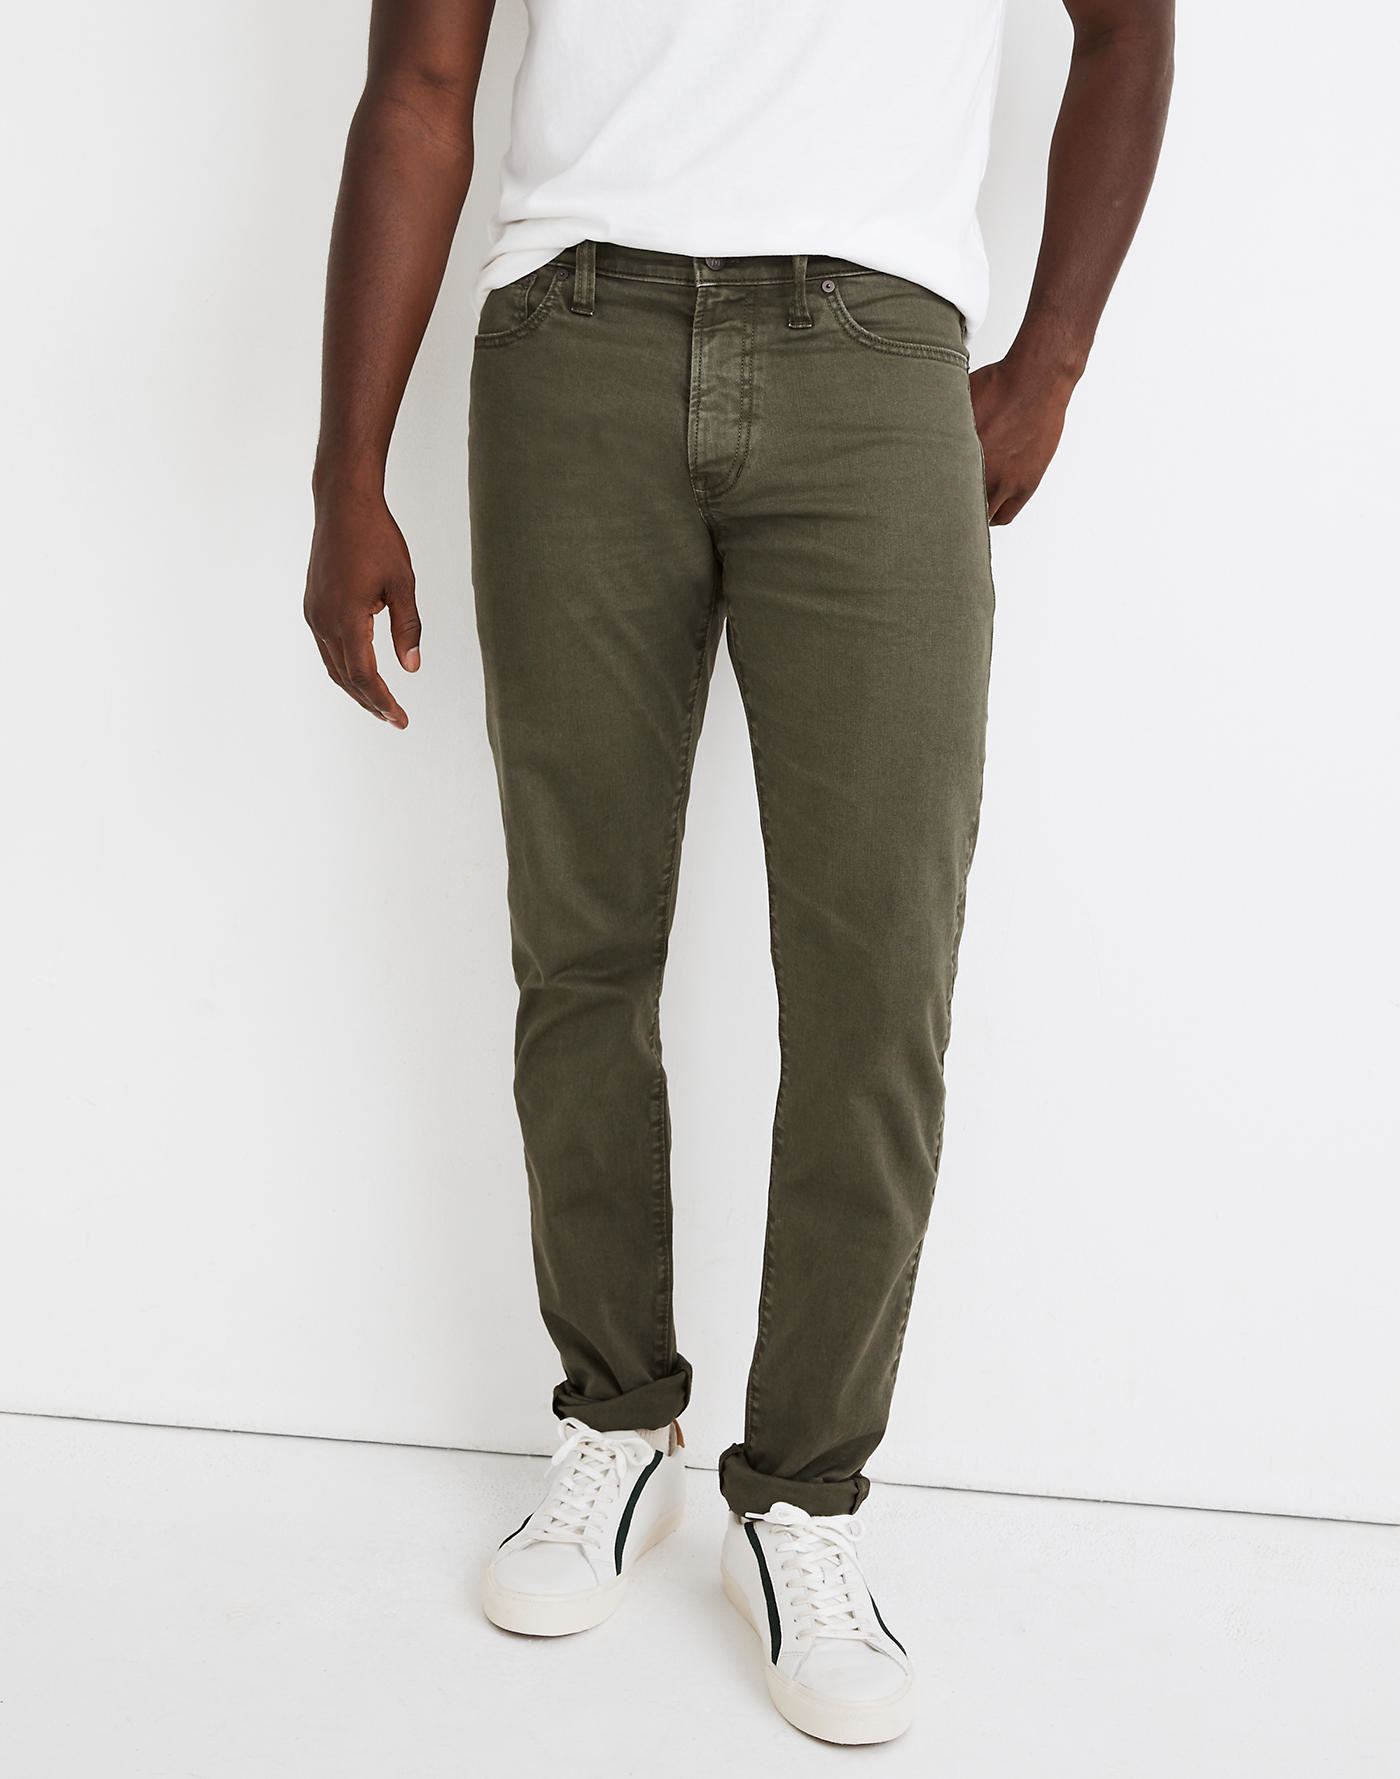 Model wearing Madewell garment-dyed athletic slim jean everyday flex jeans in deep green